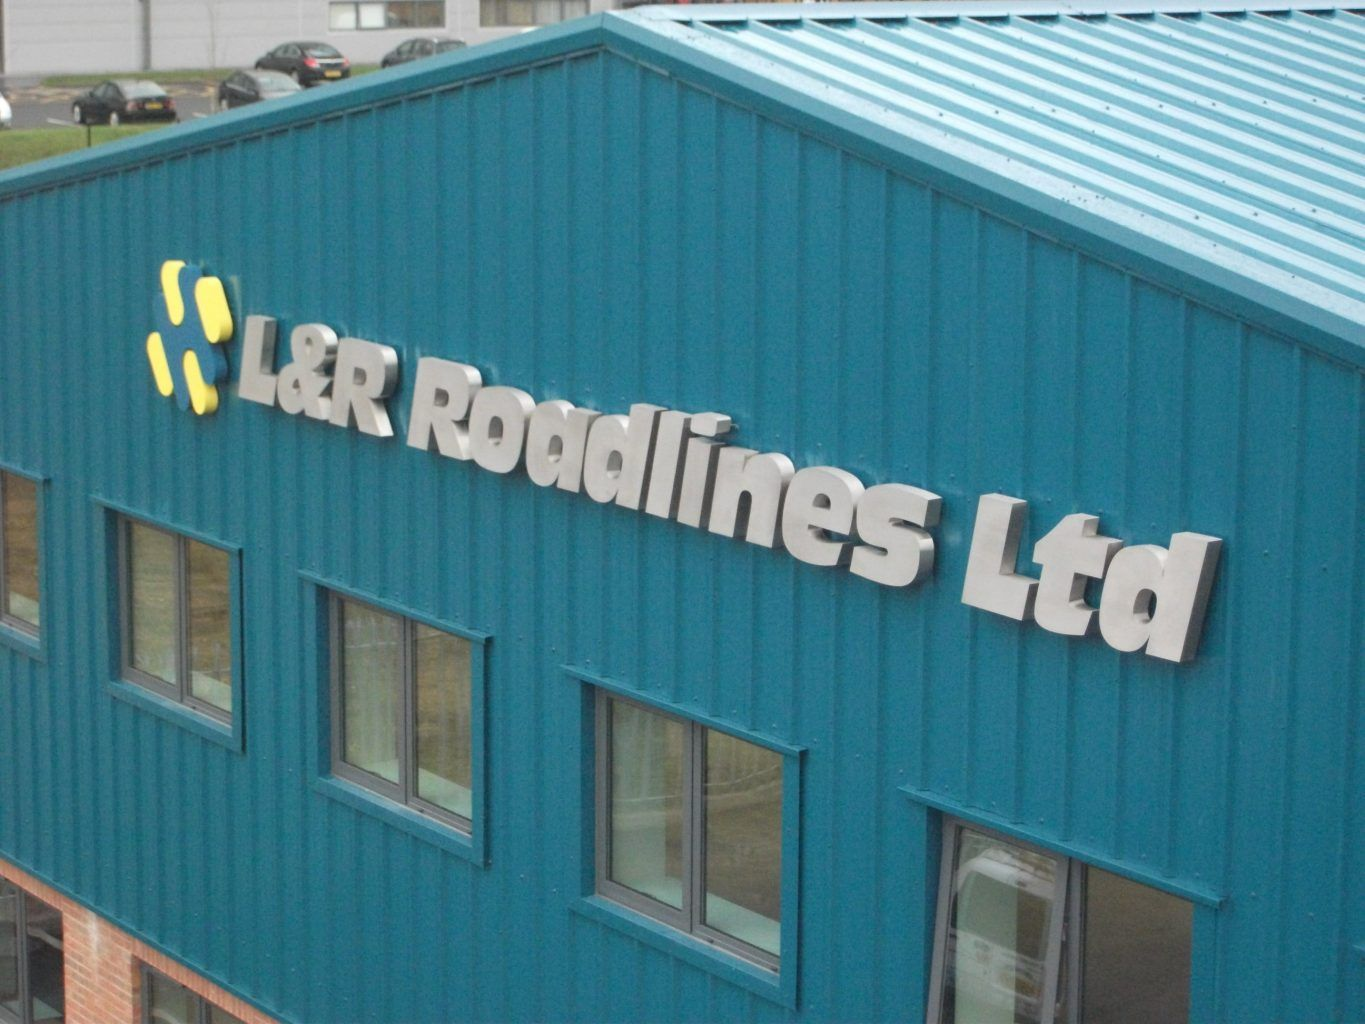 L&R Roadlines corporate built up stainless steel letters